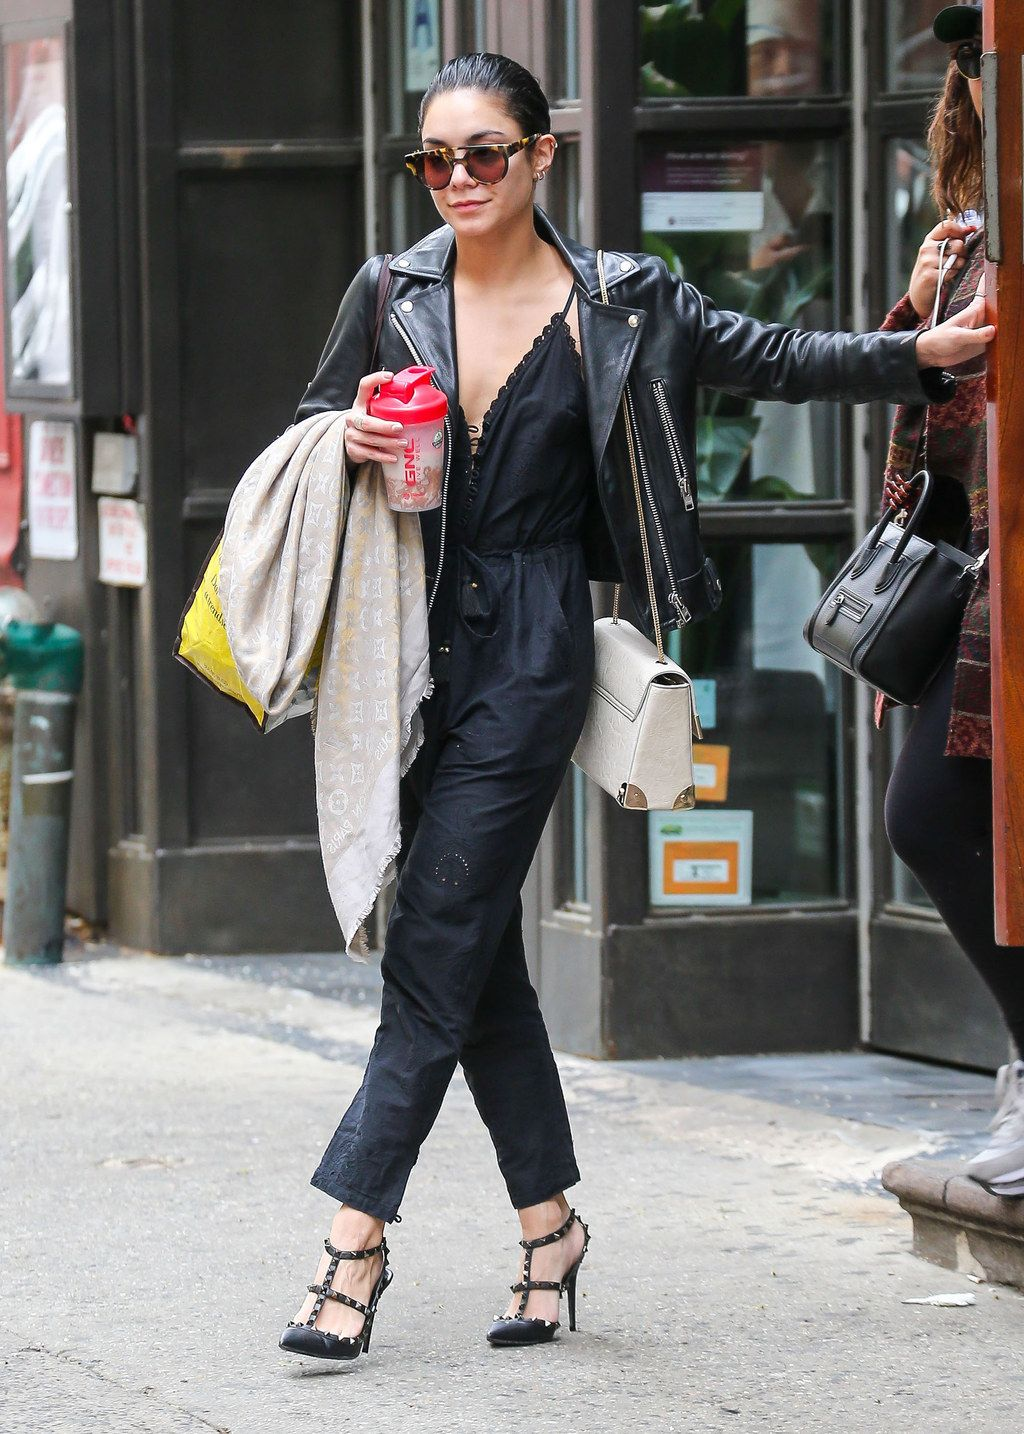 When she gave us all major jumpsuit envy. | clothes/hair ...